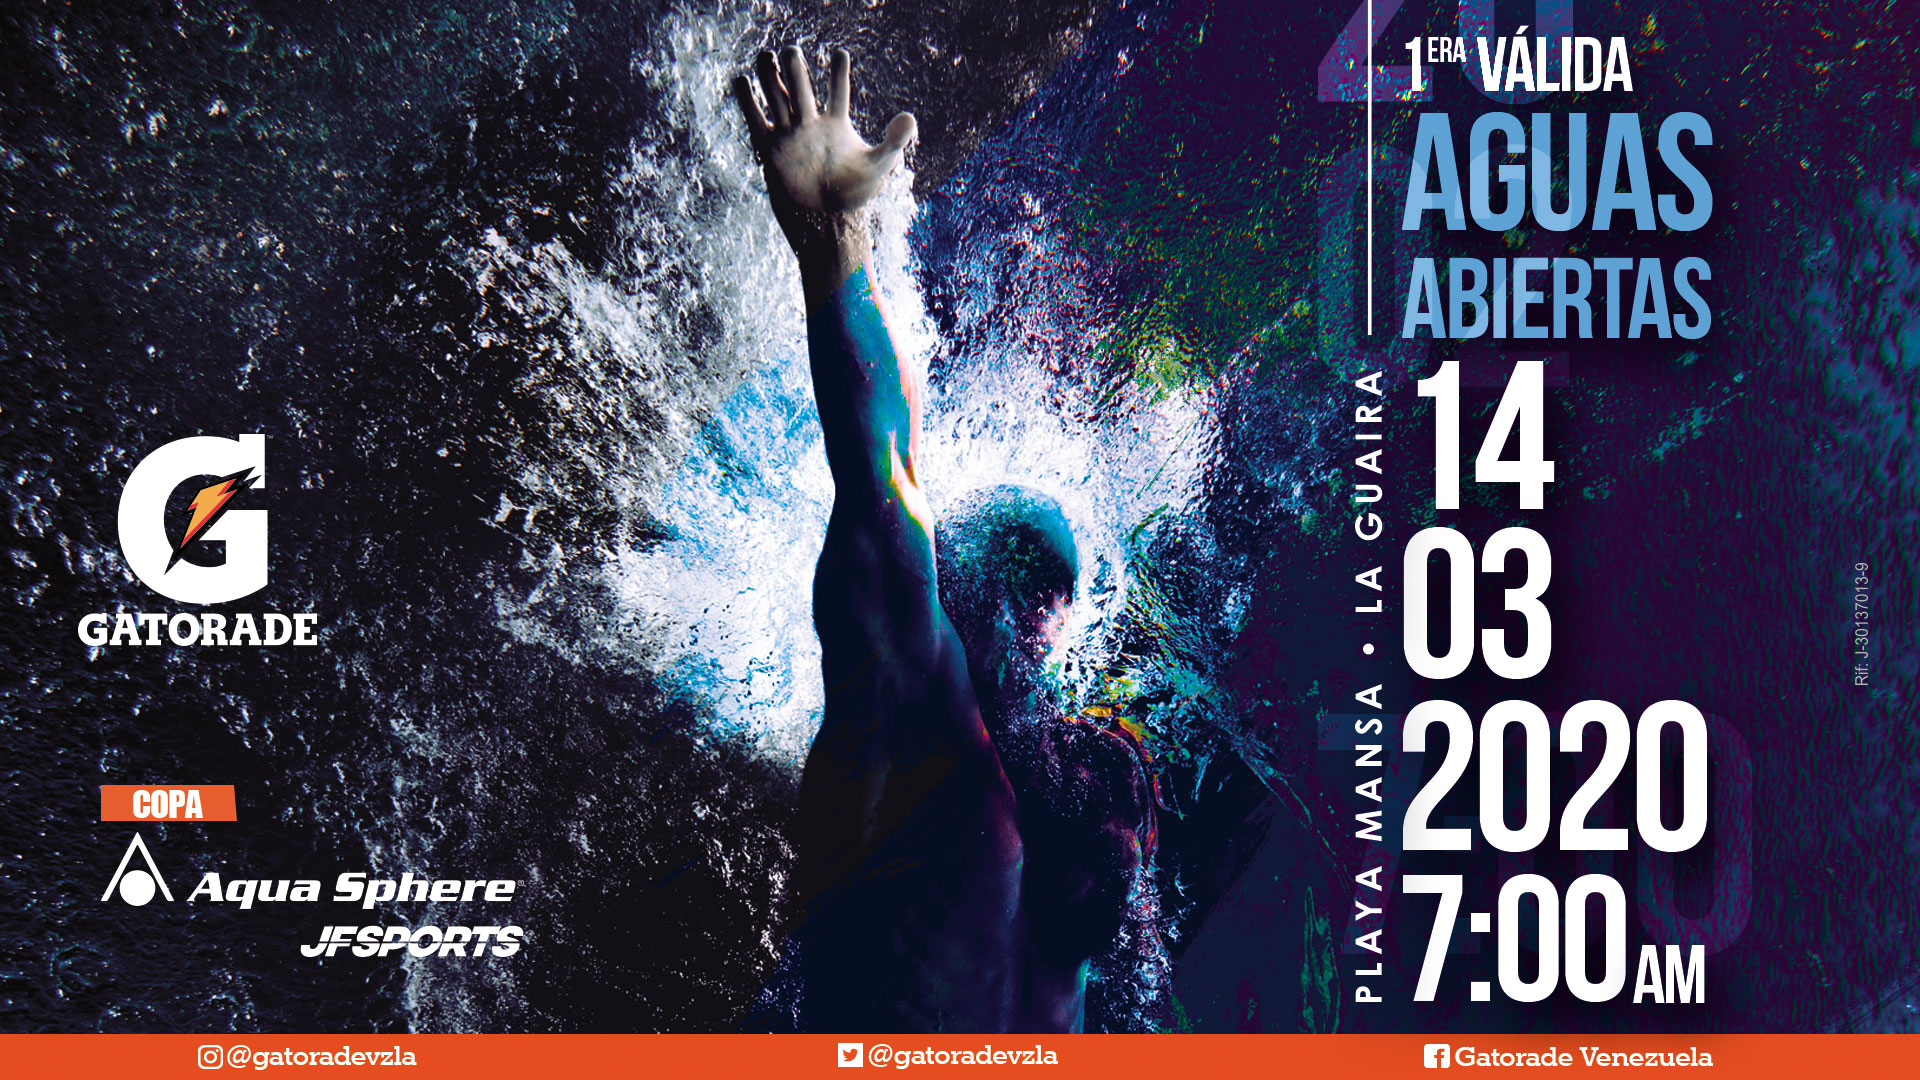 1era Válida Gatorade Aguas Abiertas - Copa AquaSphere JF Sports